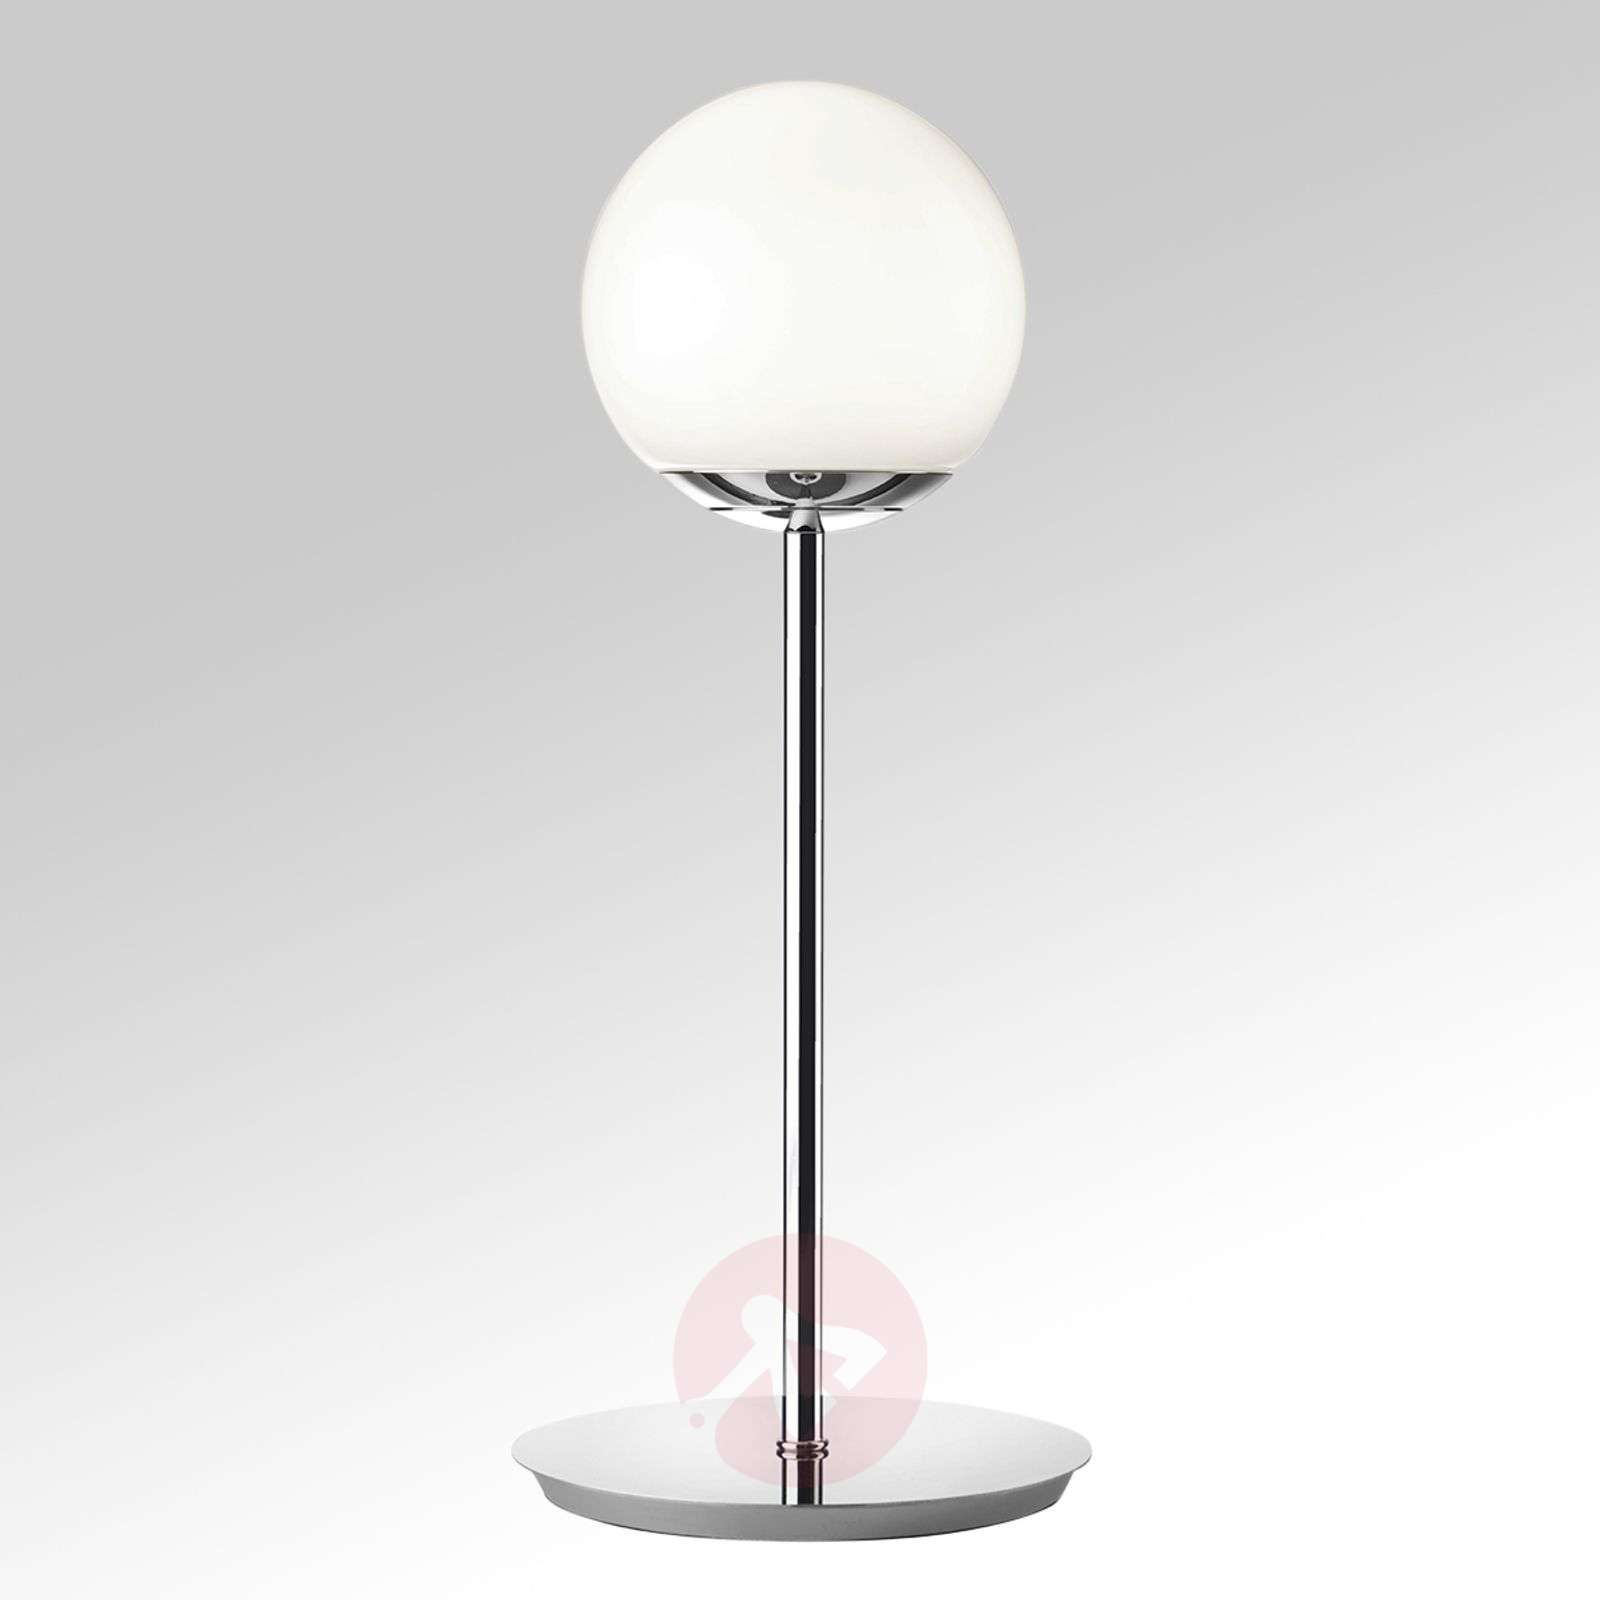 lampe poser led puppi abat jour globe en verre. Black Bedroom Furniture Sets. Home Design Ideas